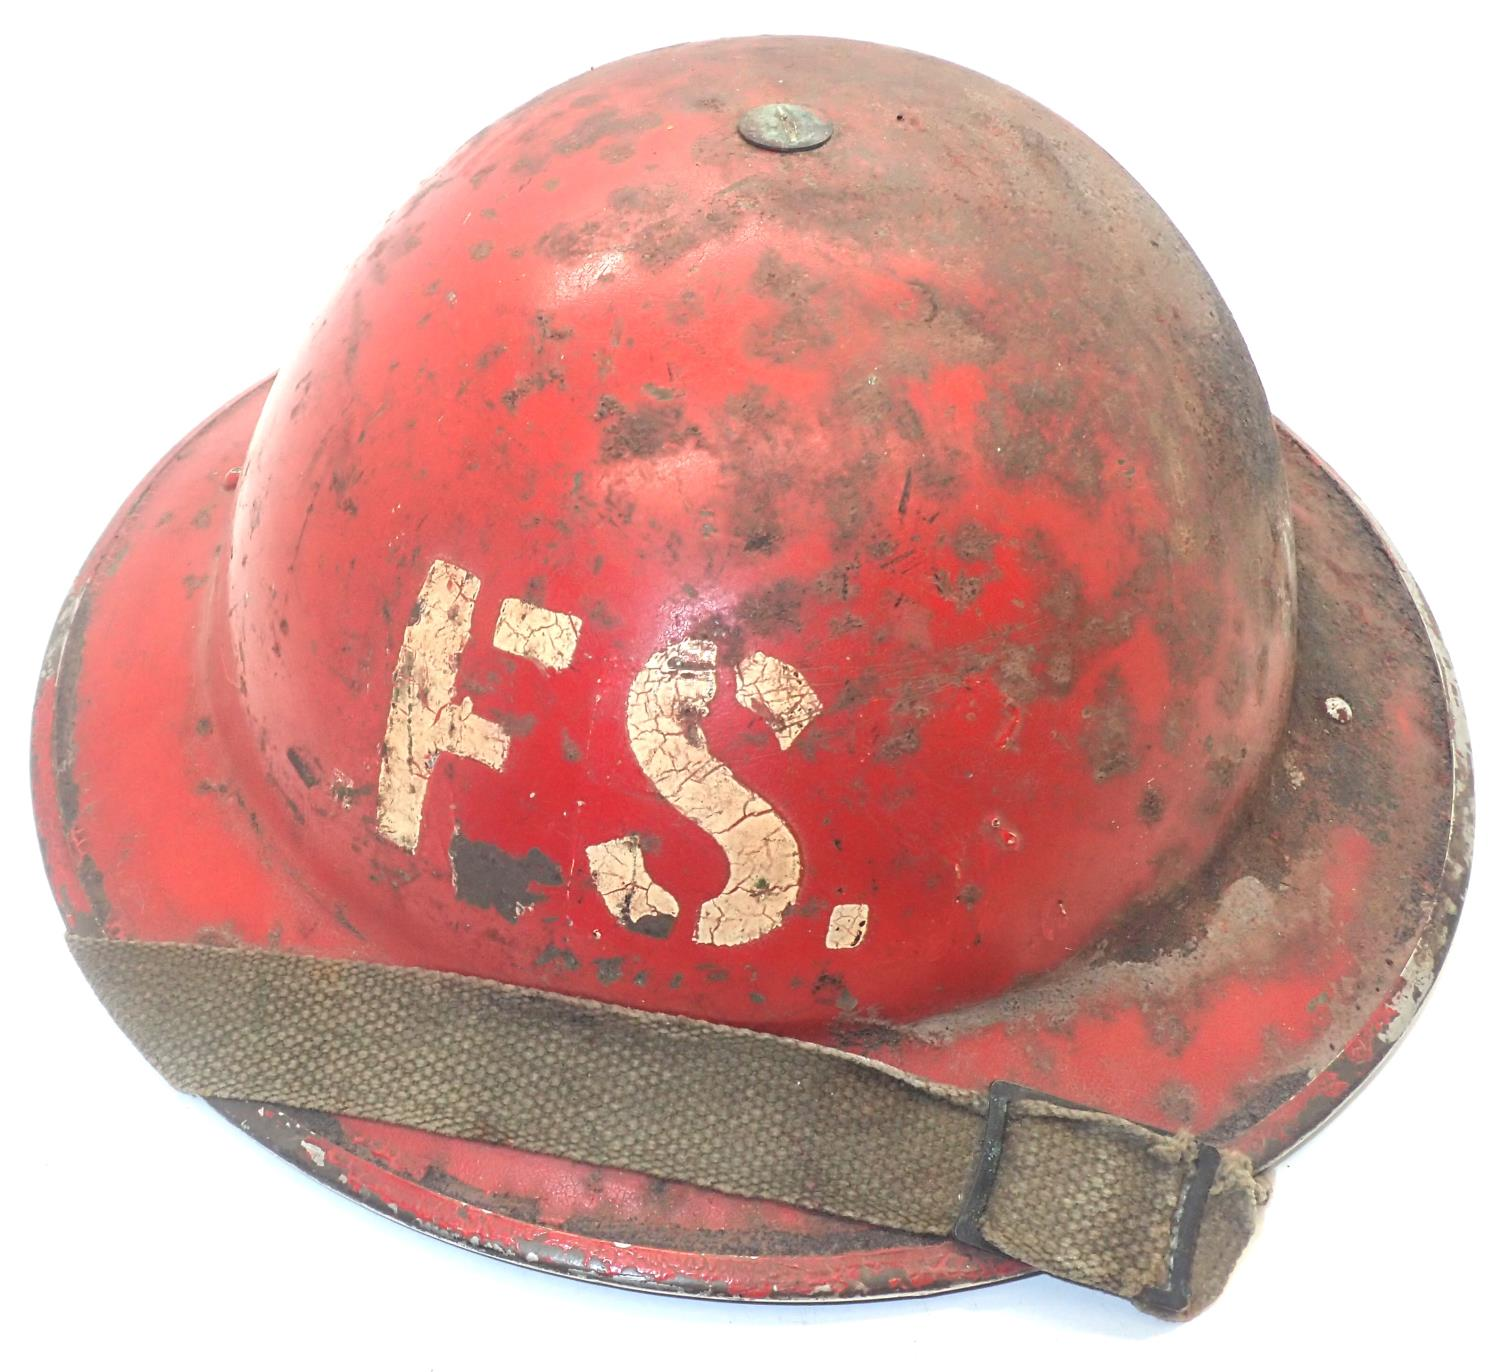 WWII Home Front fire service helmet dated 1939 with leather liner and canvas chinstrap. P&P Group